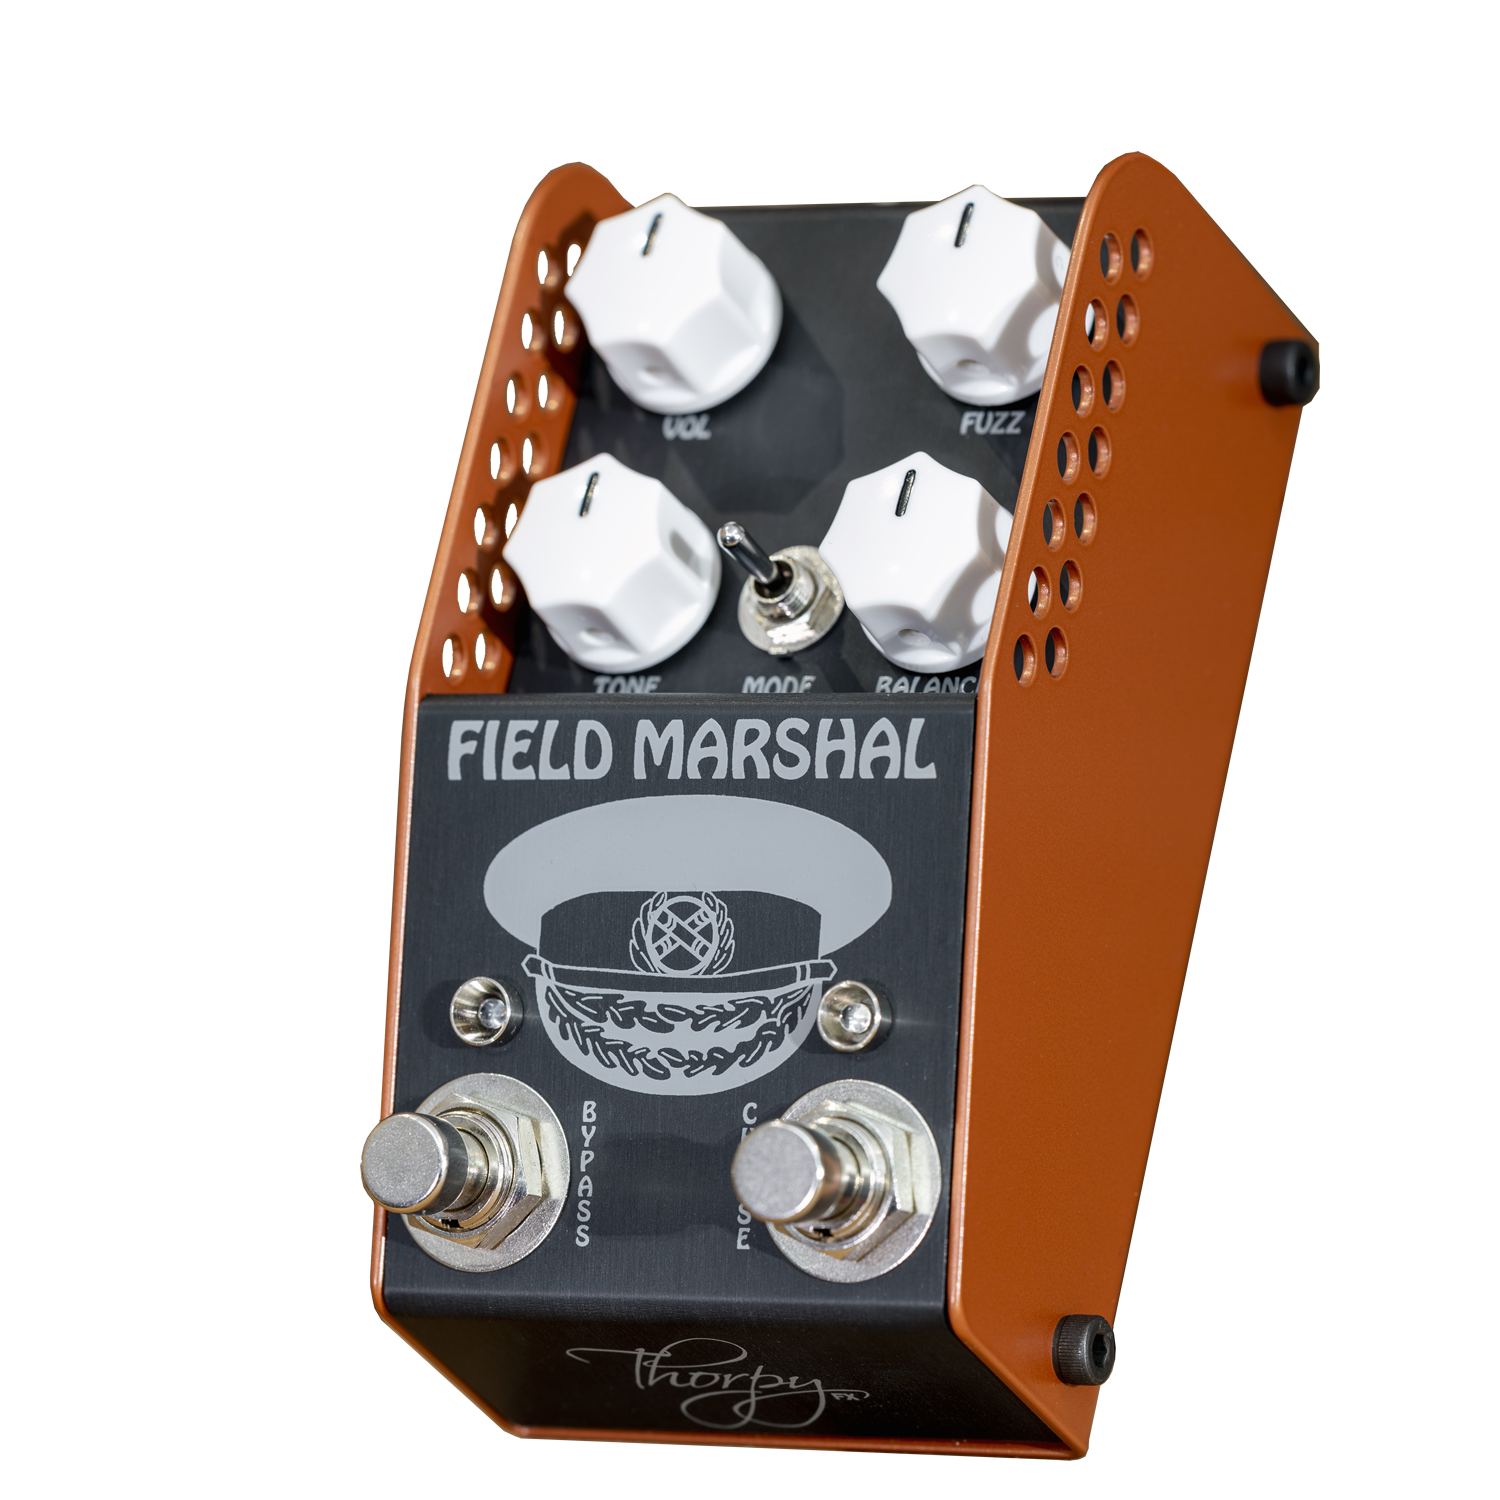 ThorpyFX Field Marshall